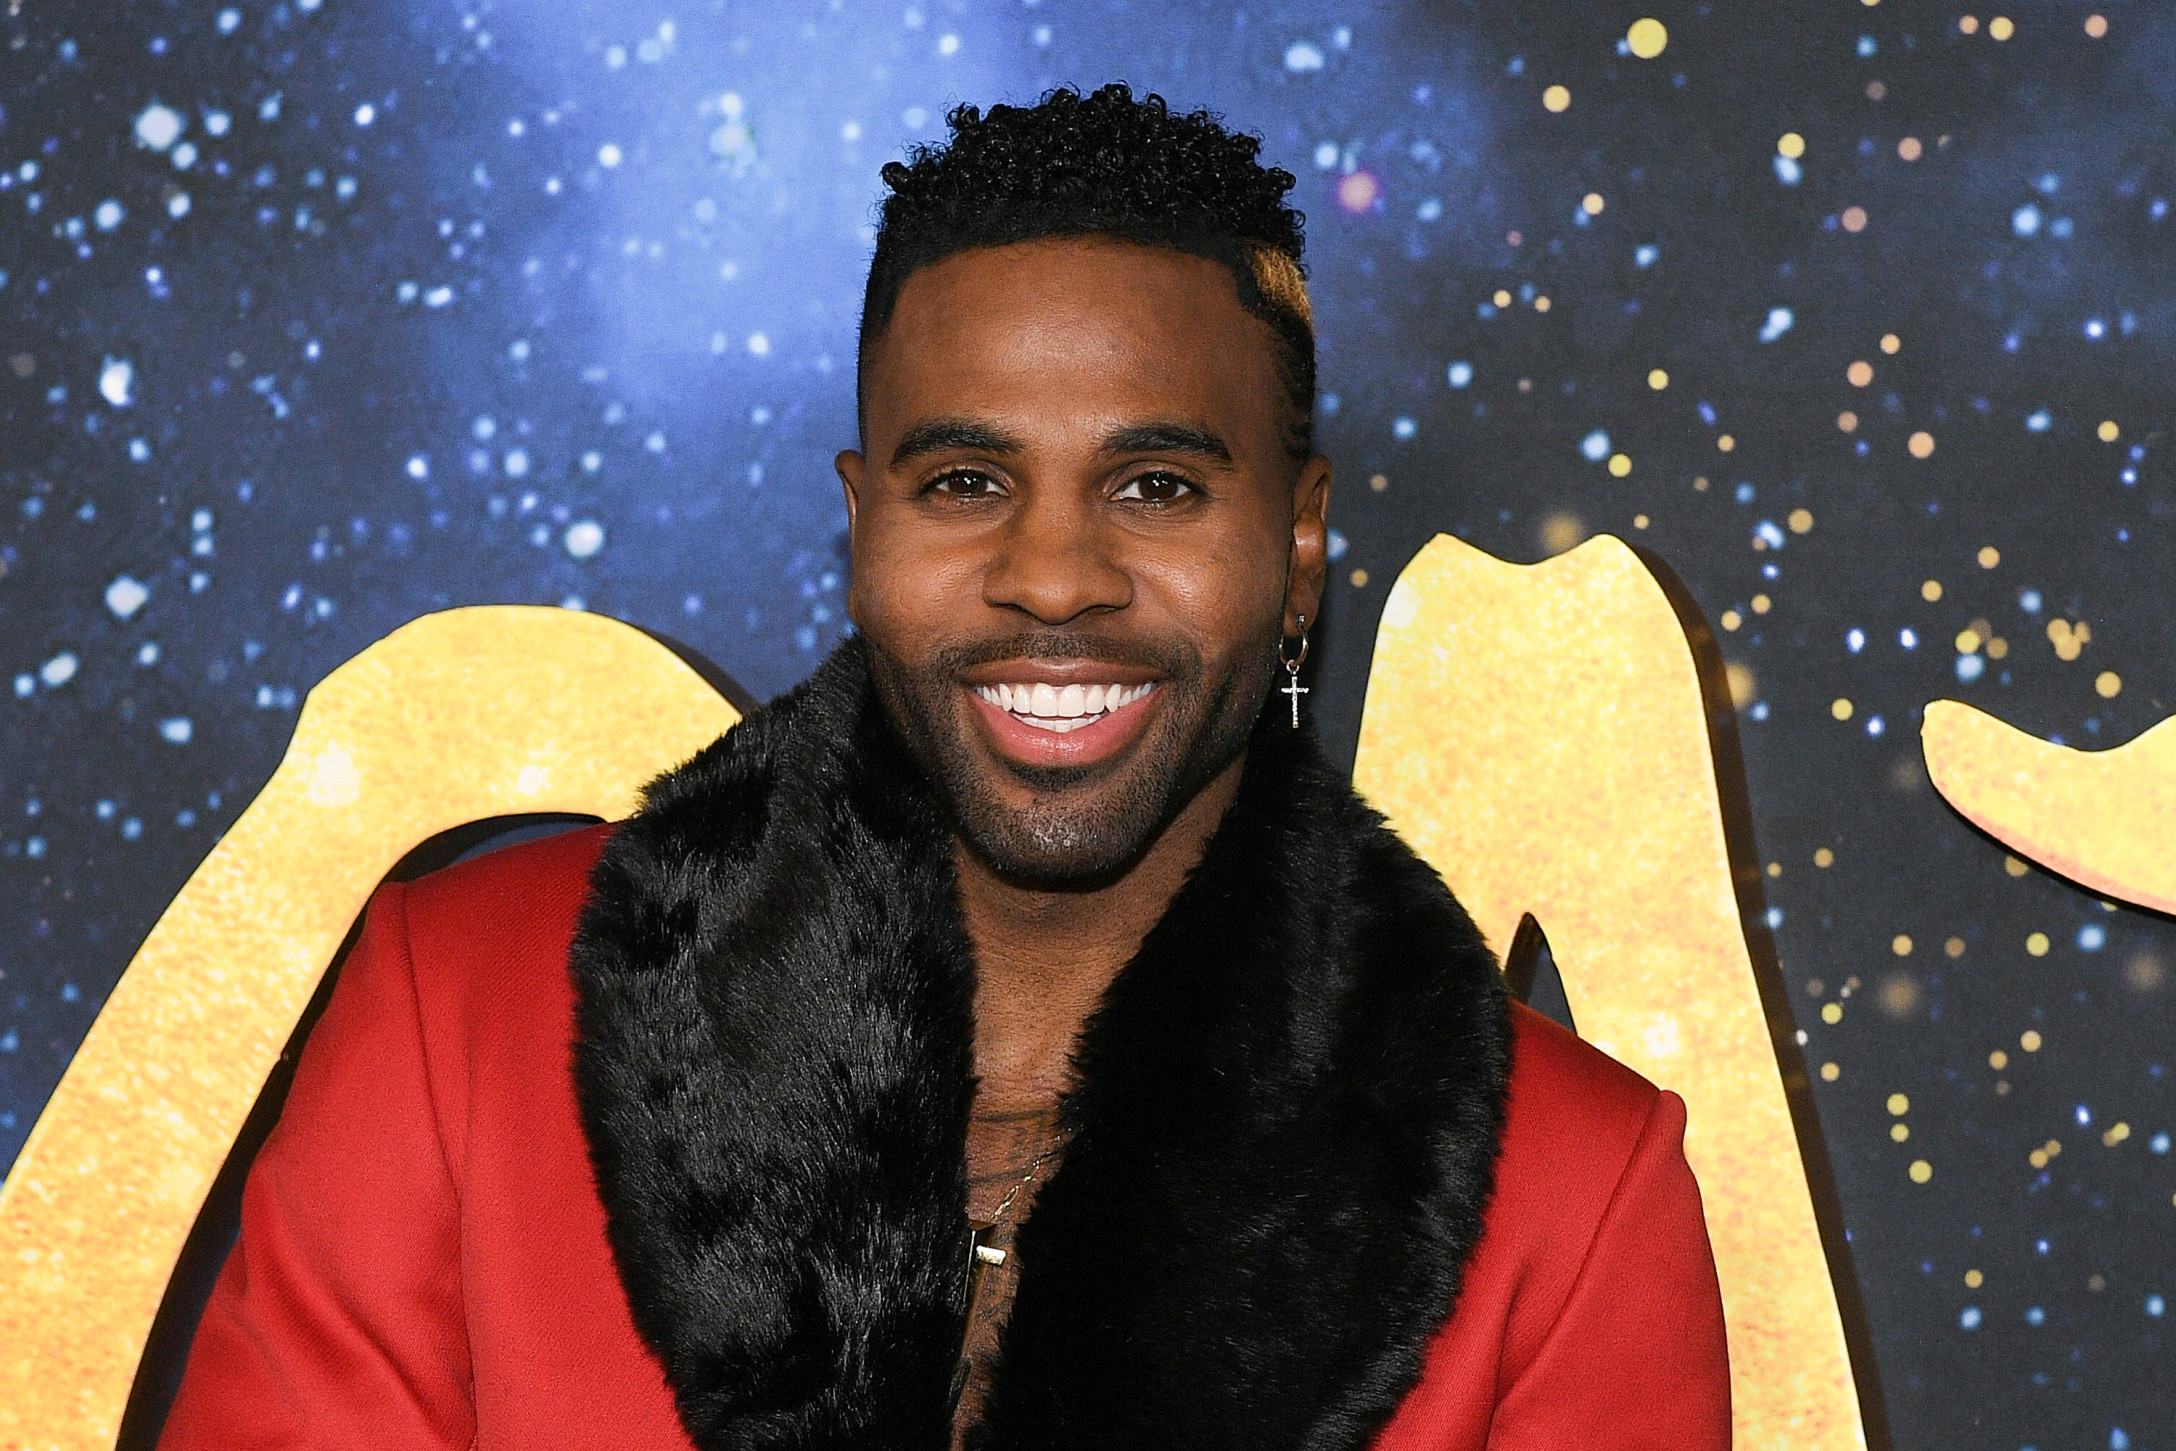 Jason Derulo Goes 'Everywhere' With His Baby Son Strapped to His Chest in Hilarious Video